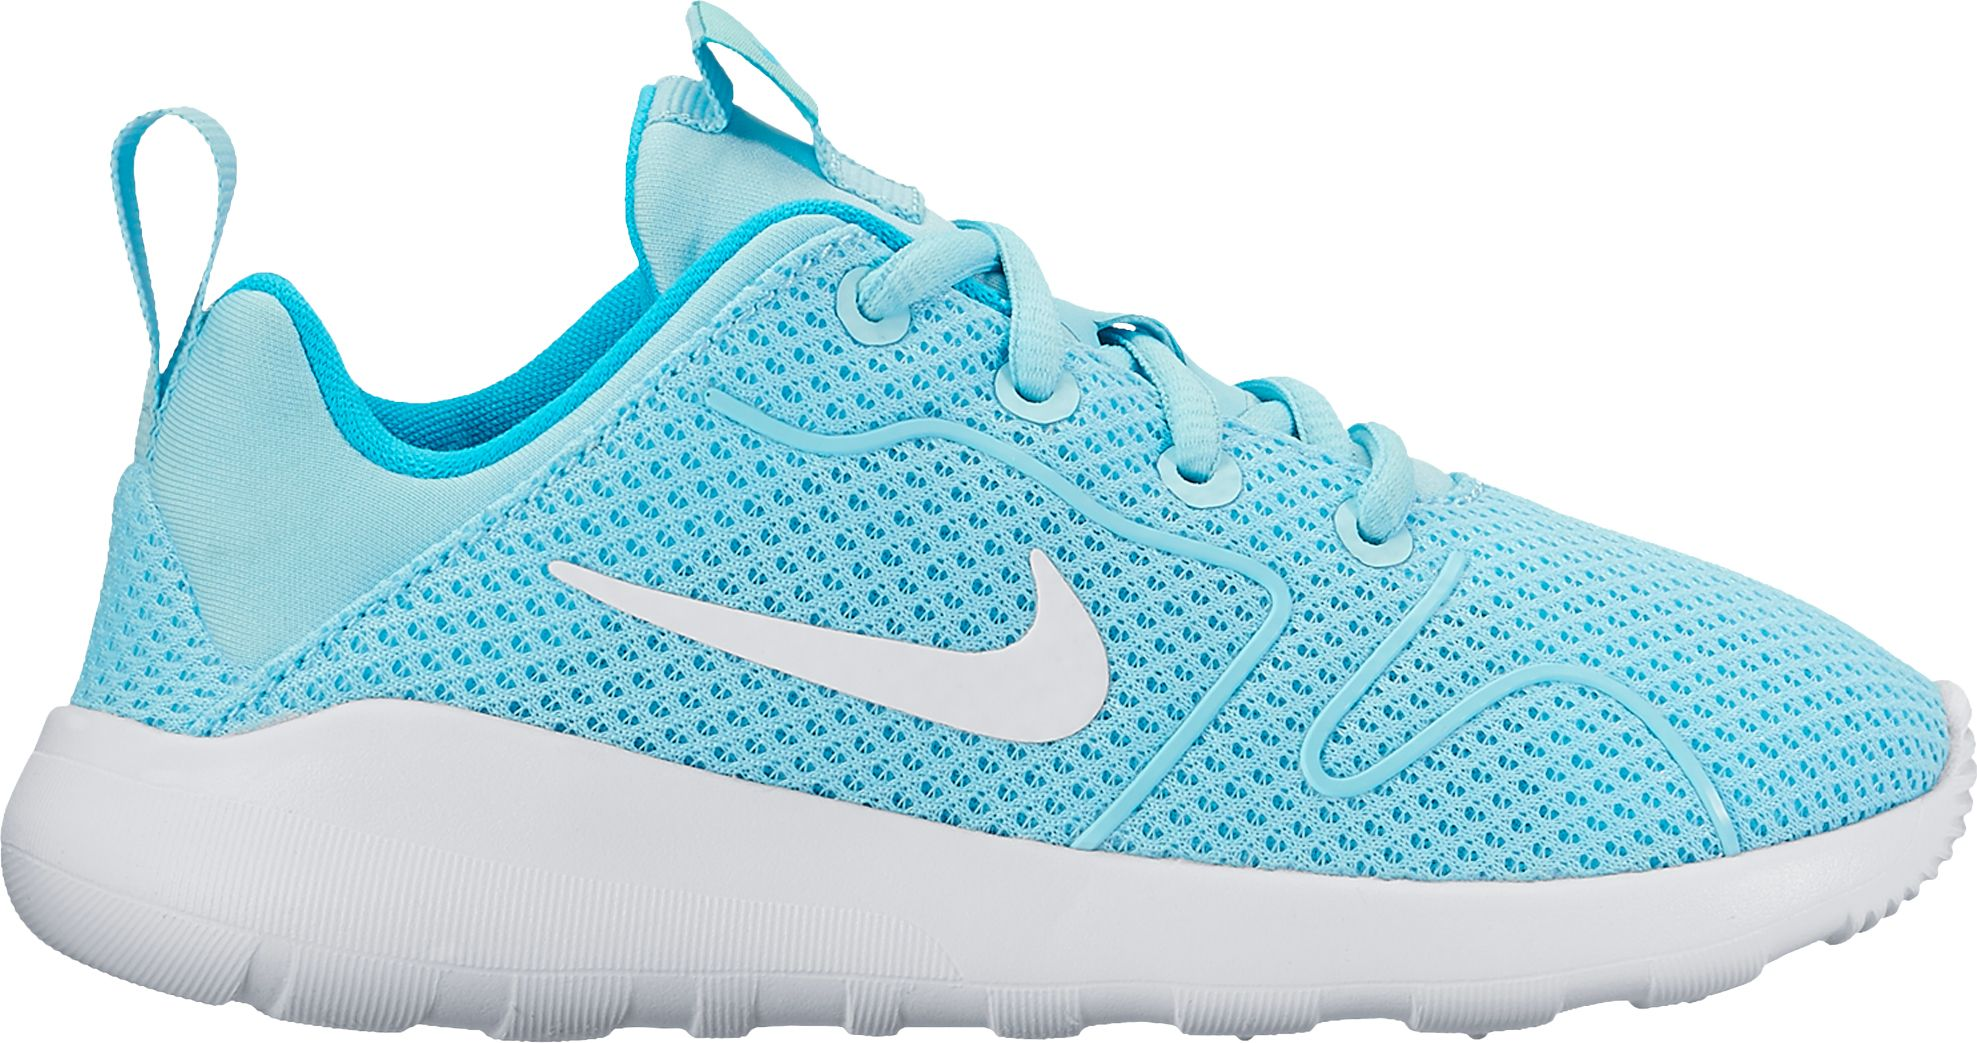 These awesome women's Nike Revolution 4 running shoes are constructed from lightweight, single-layer mesh. Their minimal design contains no-sew overlays and soft foam beneath the foot for a true comfort experience.